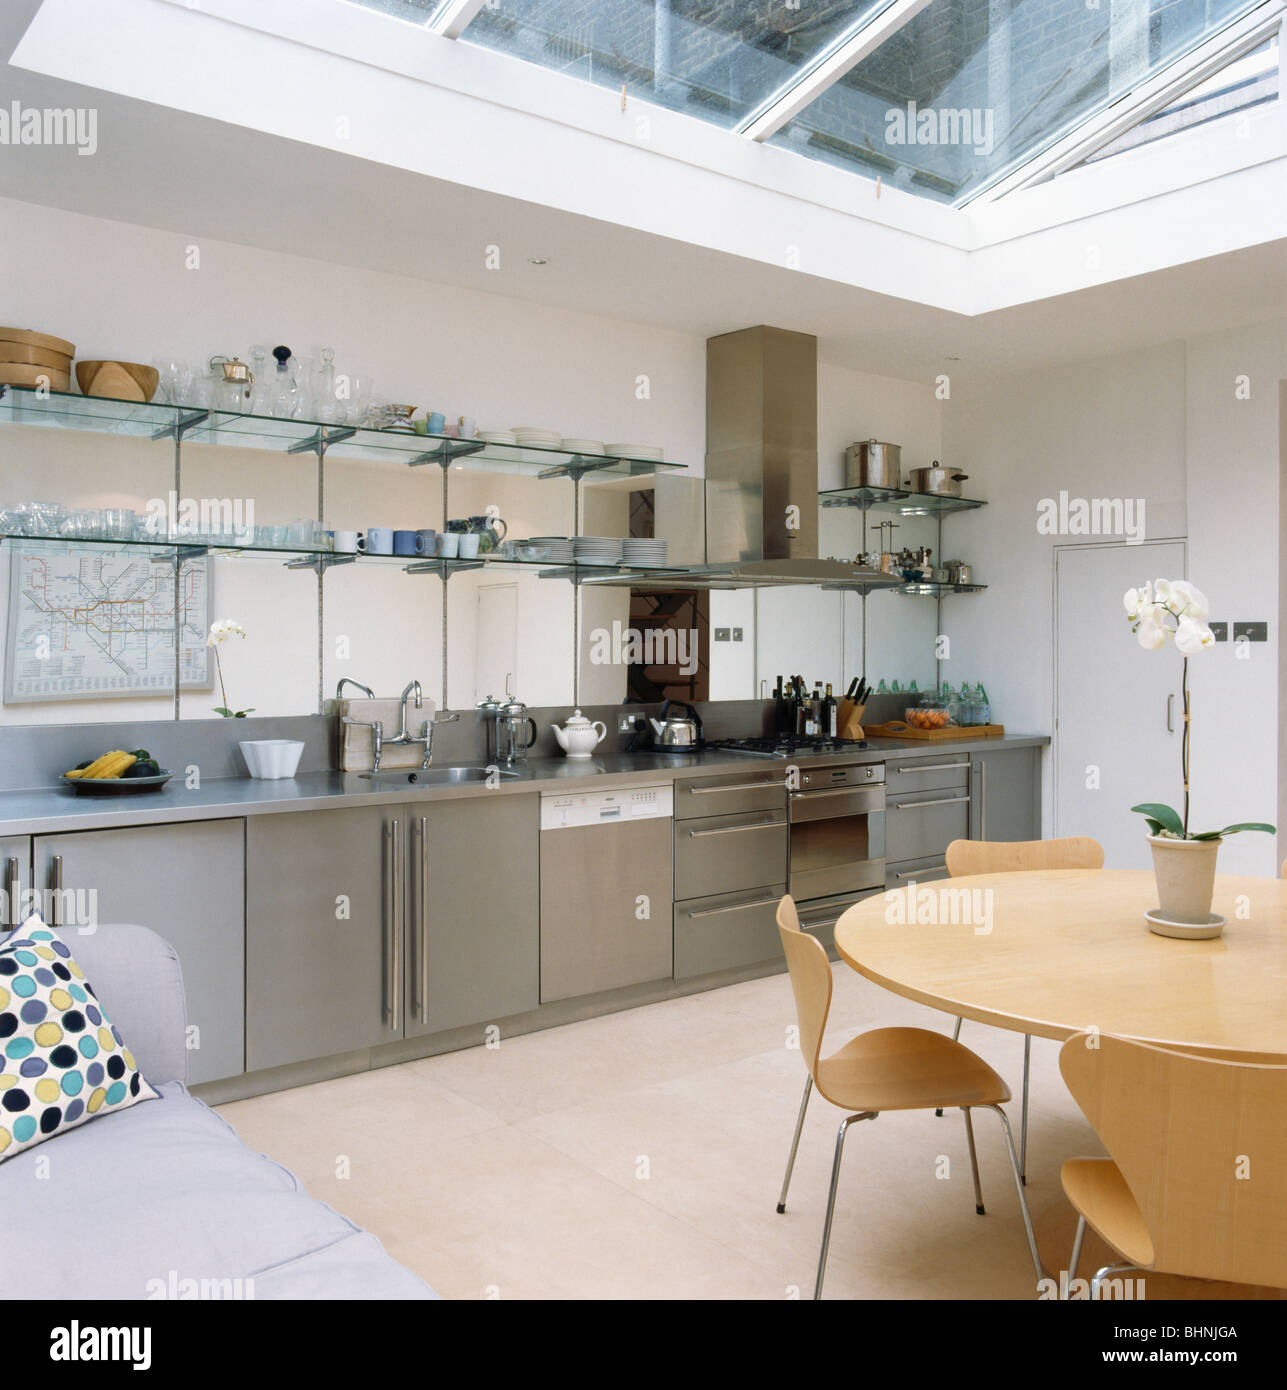 Jjo Urban Kitchen Modern Fitted Kitchens: Glass Shelving Above Stainless Steel Fitted Units In